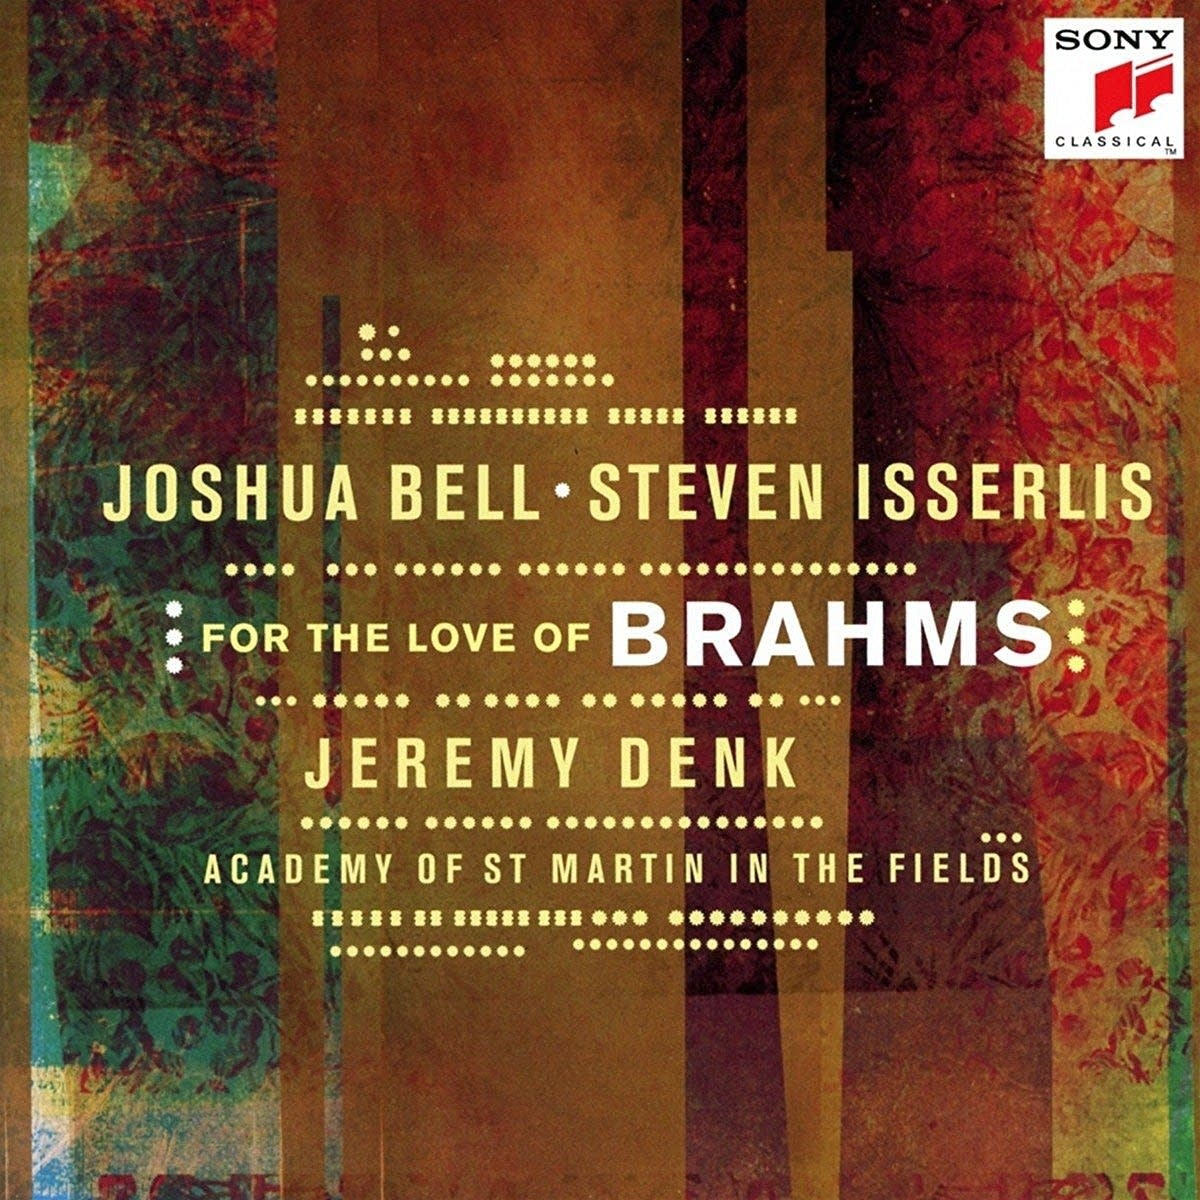 Bell, Isserlis, Denk - For the Love of Brahms